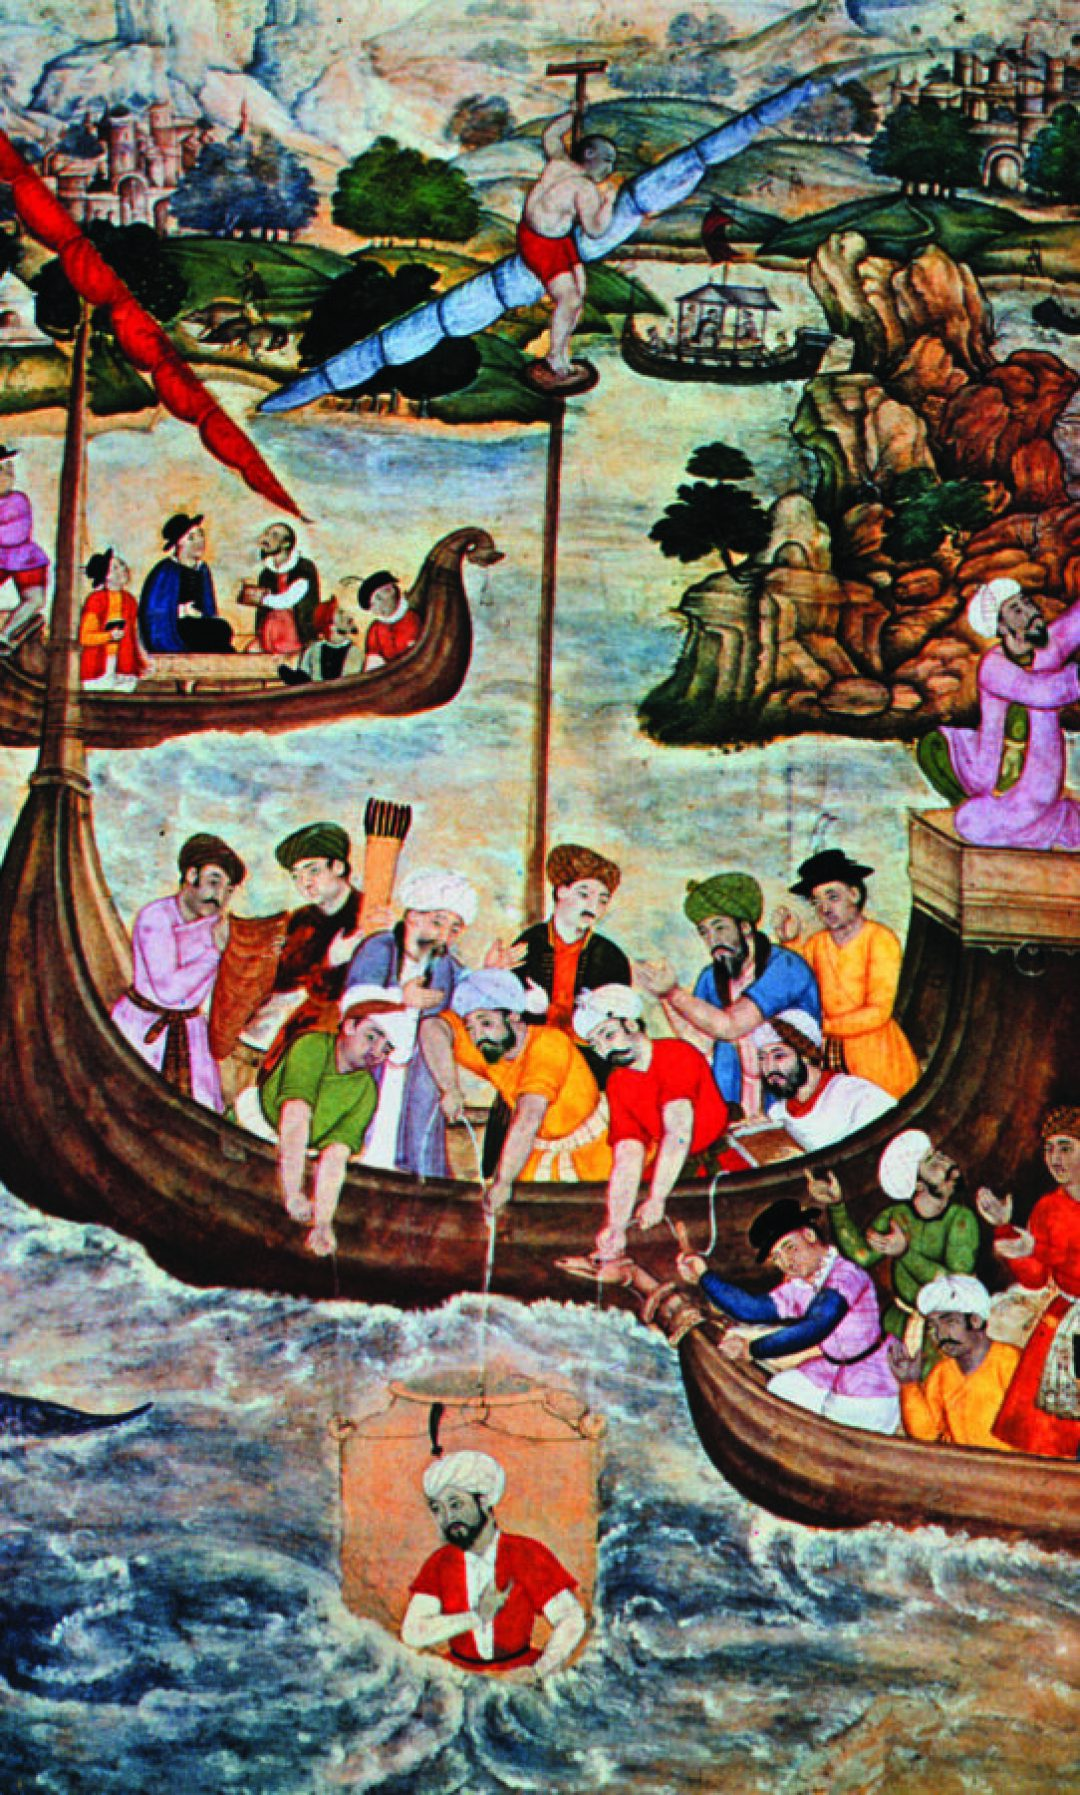 A 16th century painting of Alexander the Great being lowered into the harbor in a kind of glass diving bell.